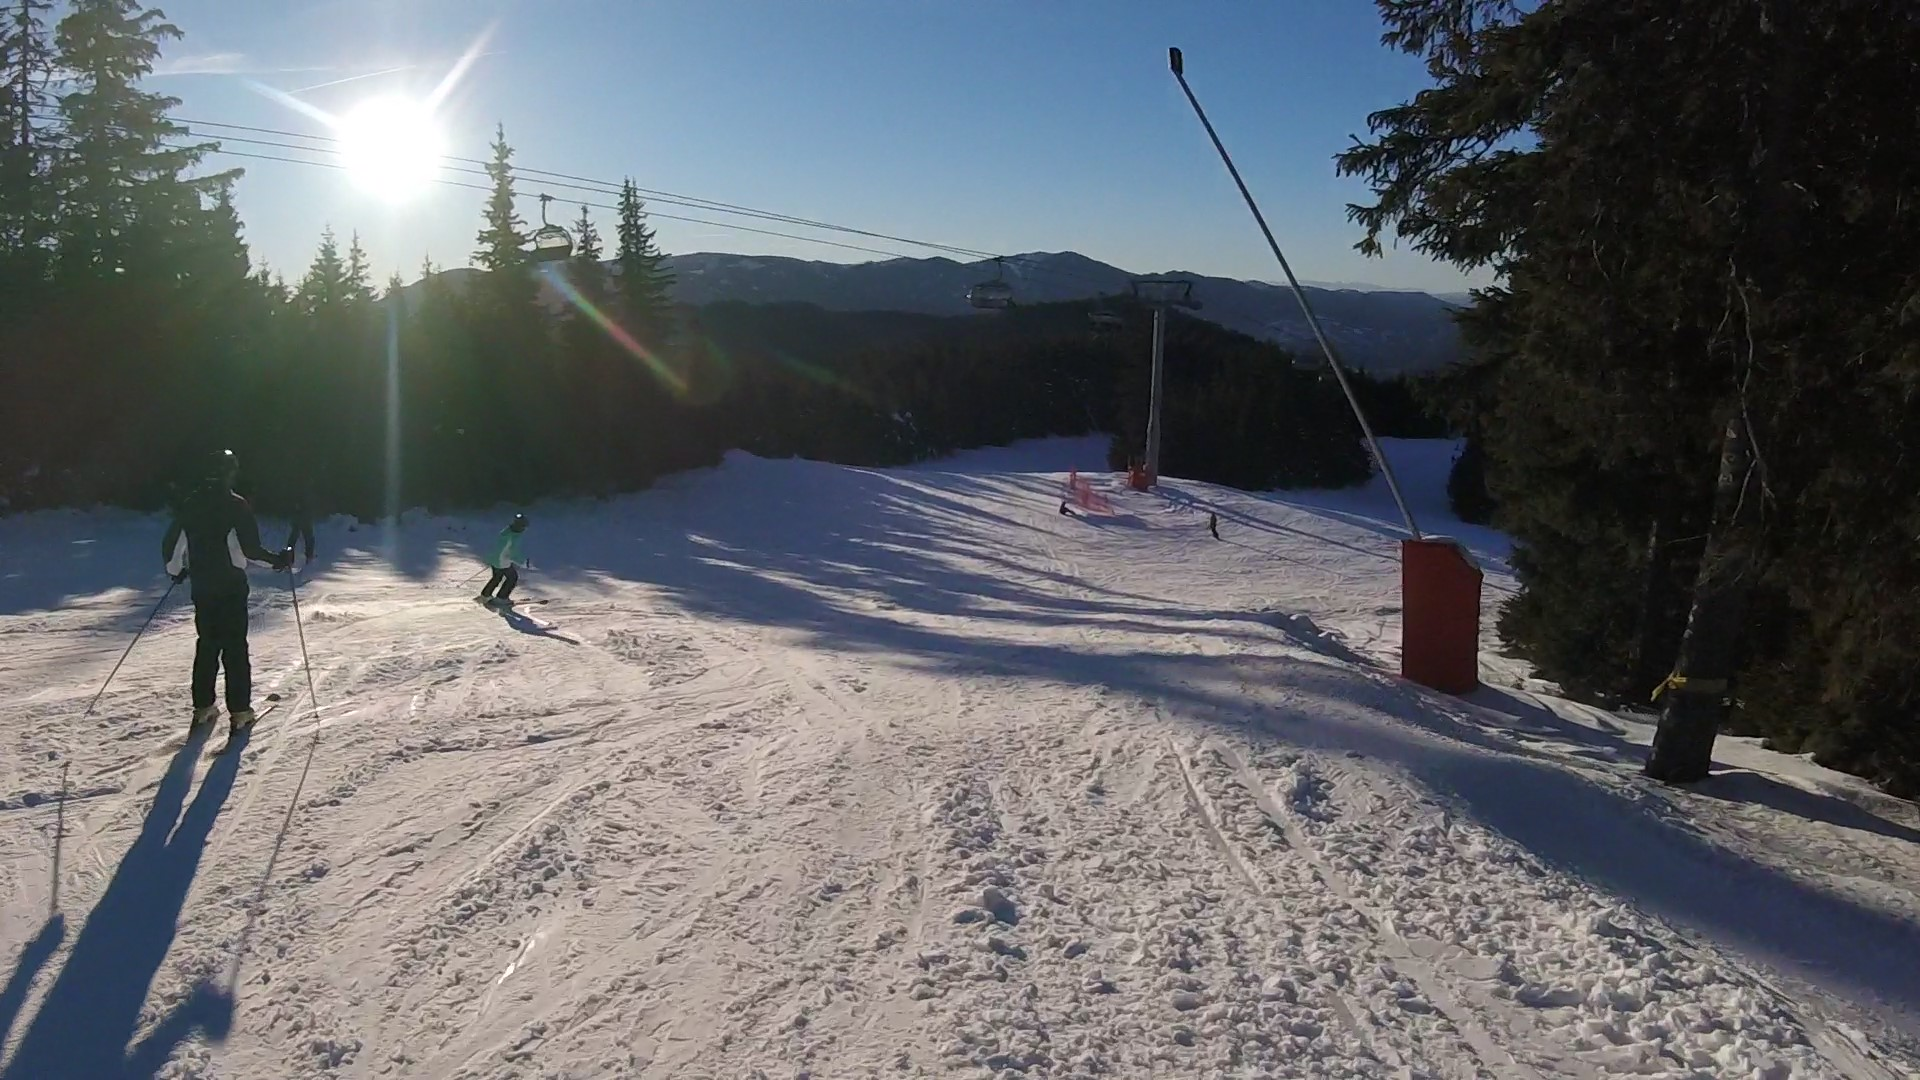 Towards the end of the day, at Pamporovo